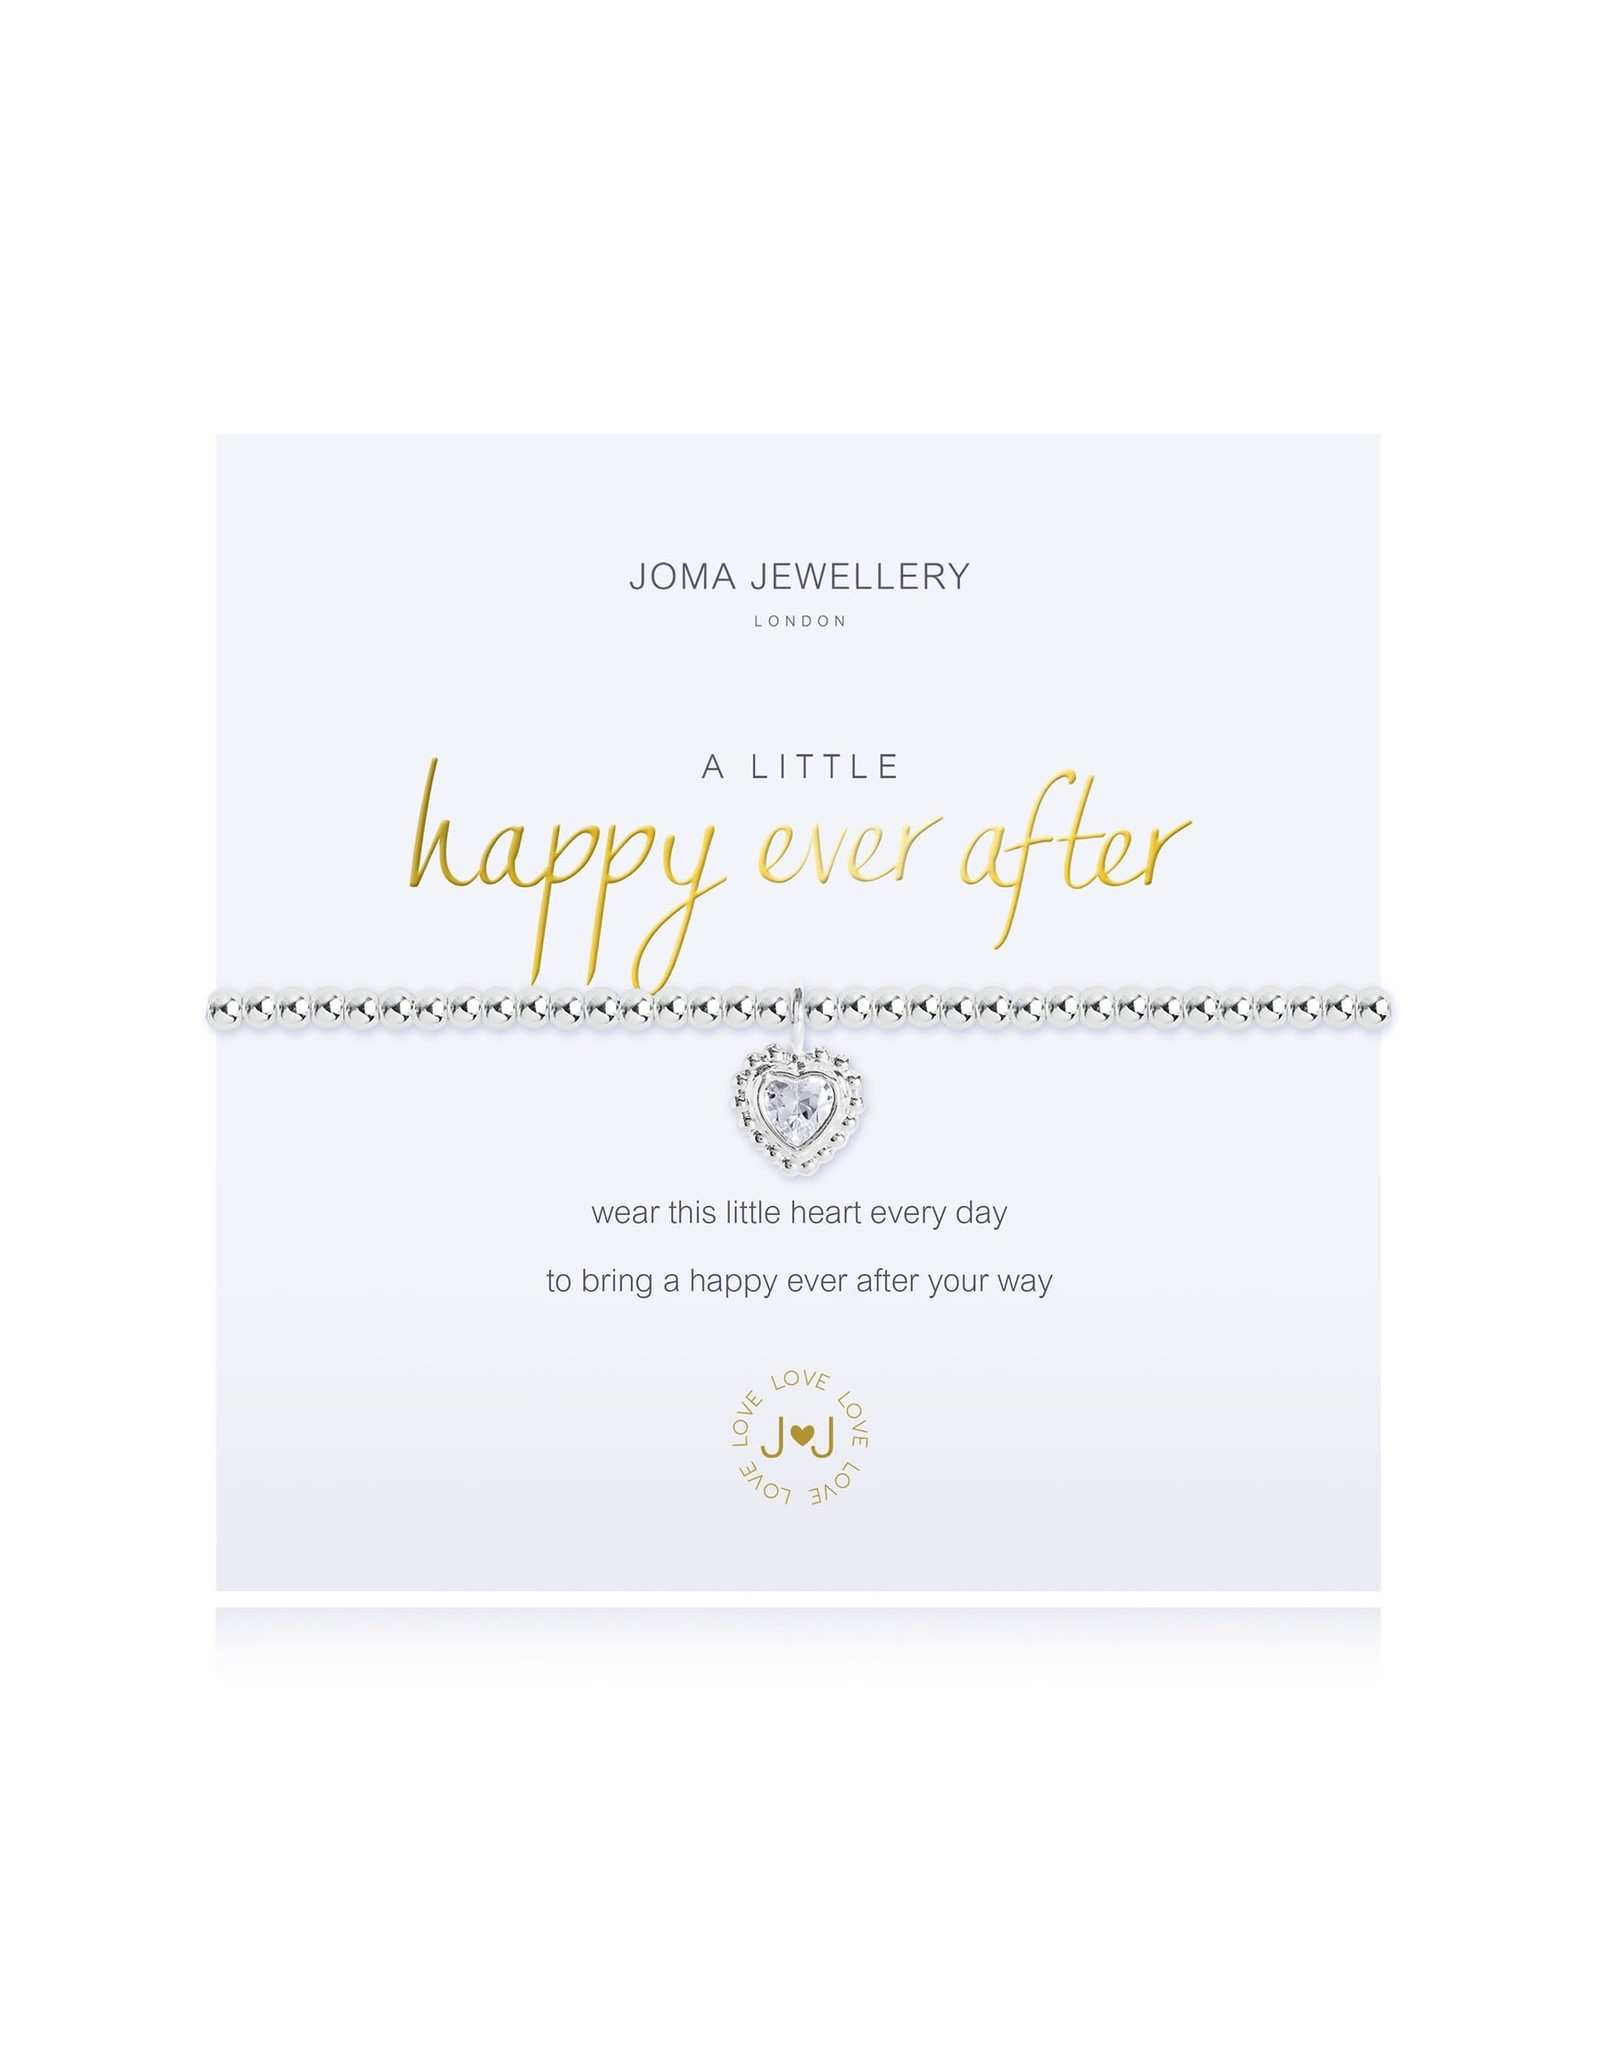 Joma Jewellery A Little - Happy Ever After